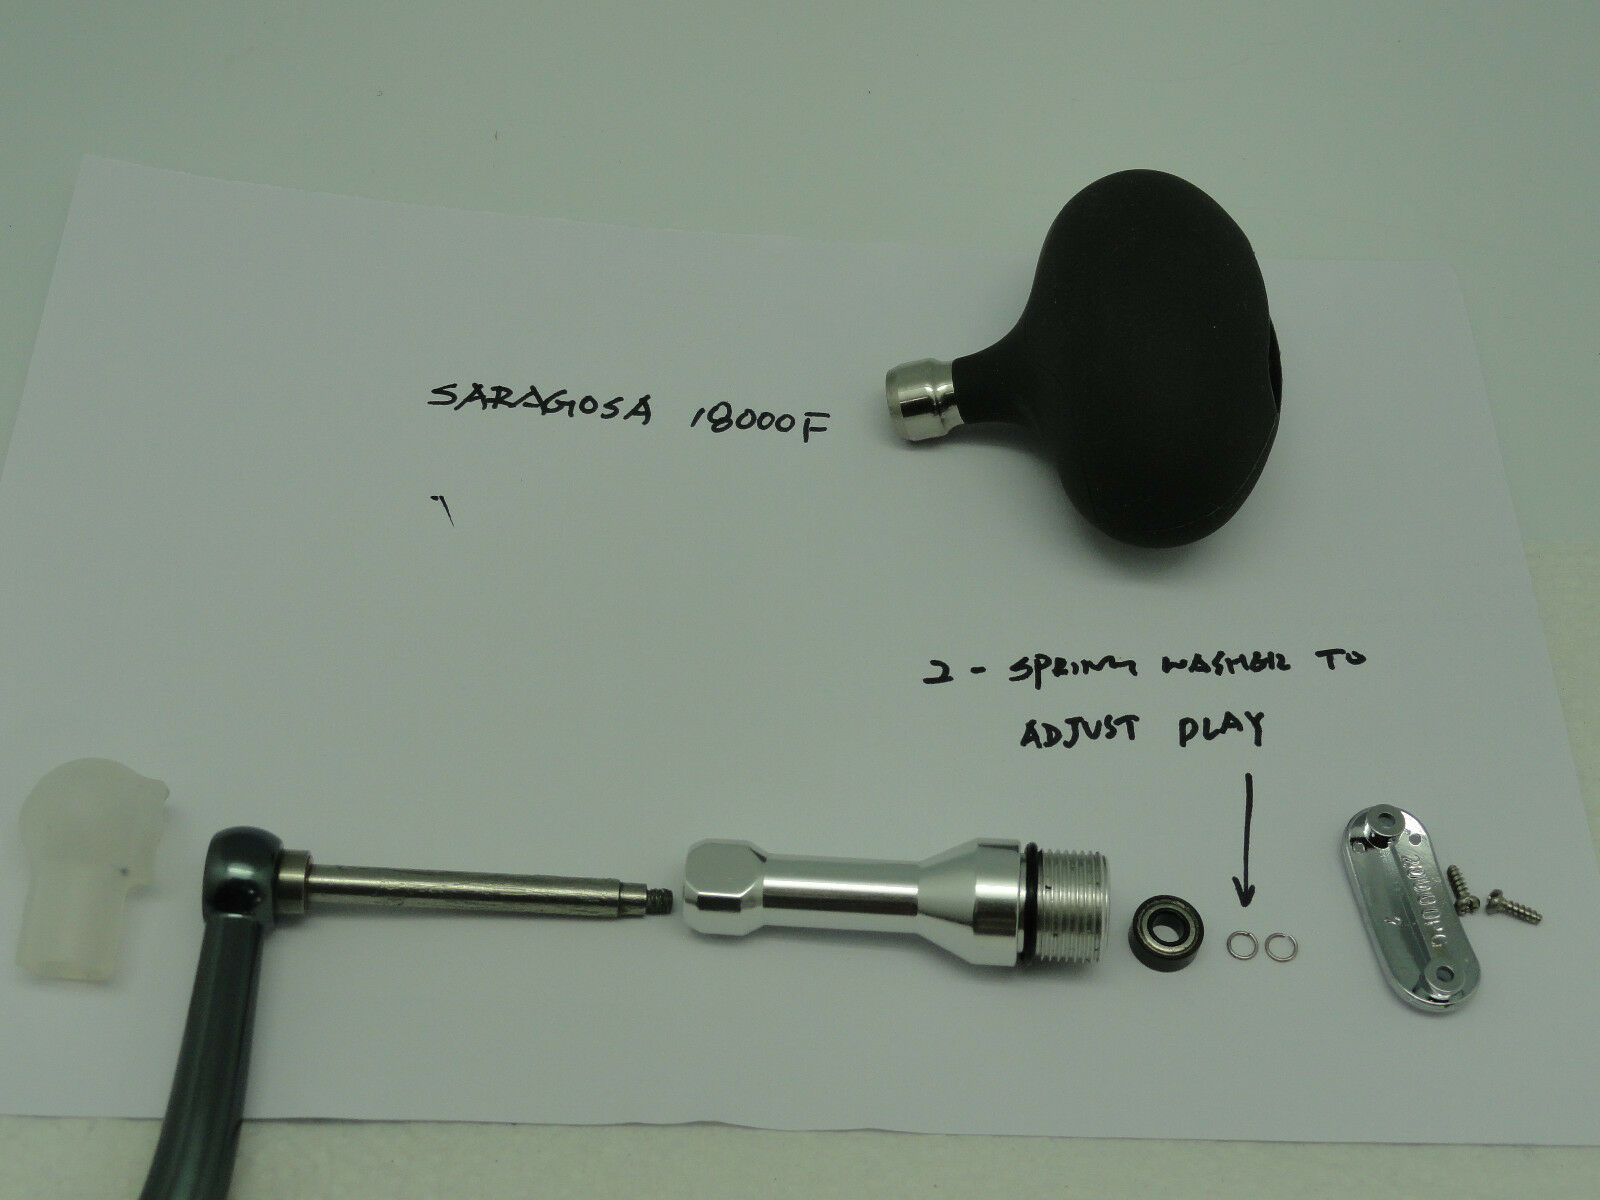 U.J T-BAR T092 18000 handle for Shimano old Saragosa 14000 18000 T092 F spinning REEL GR/PG a17cb8